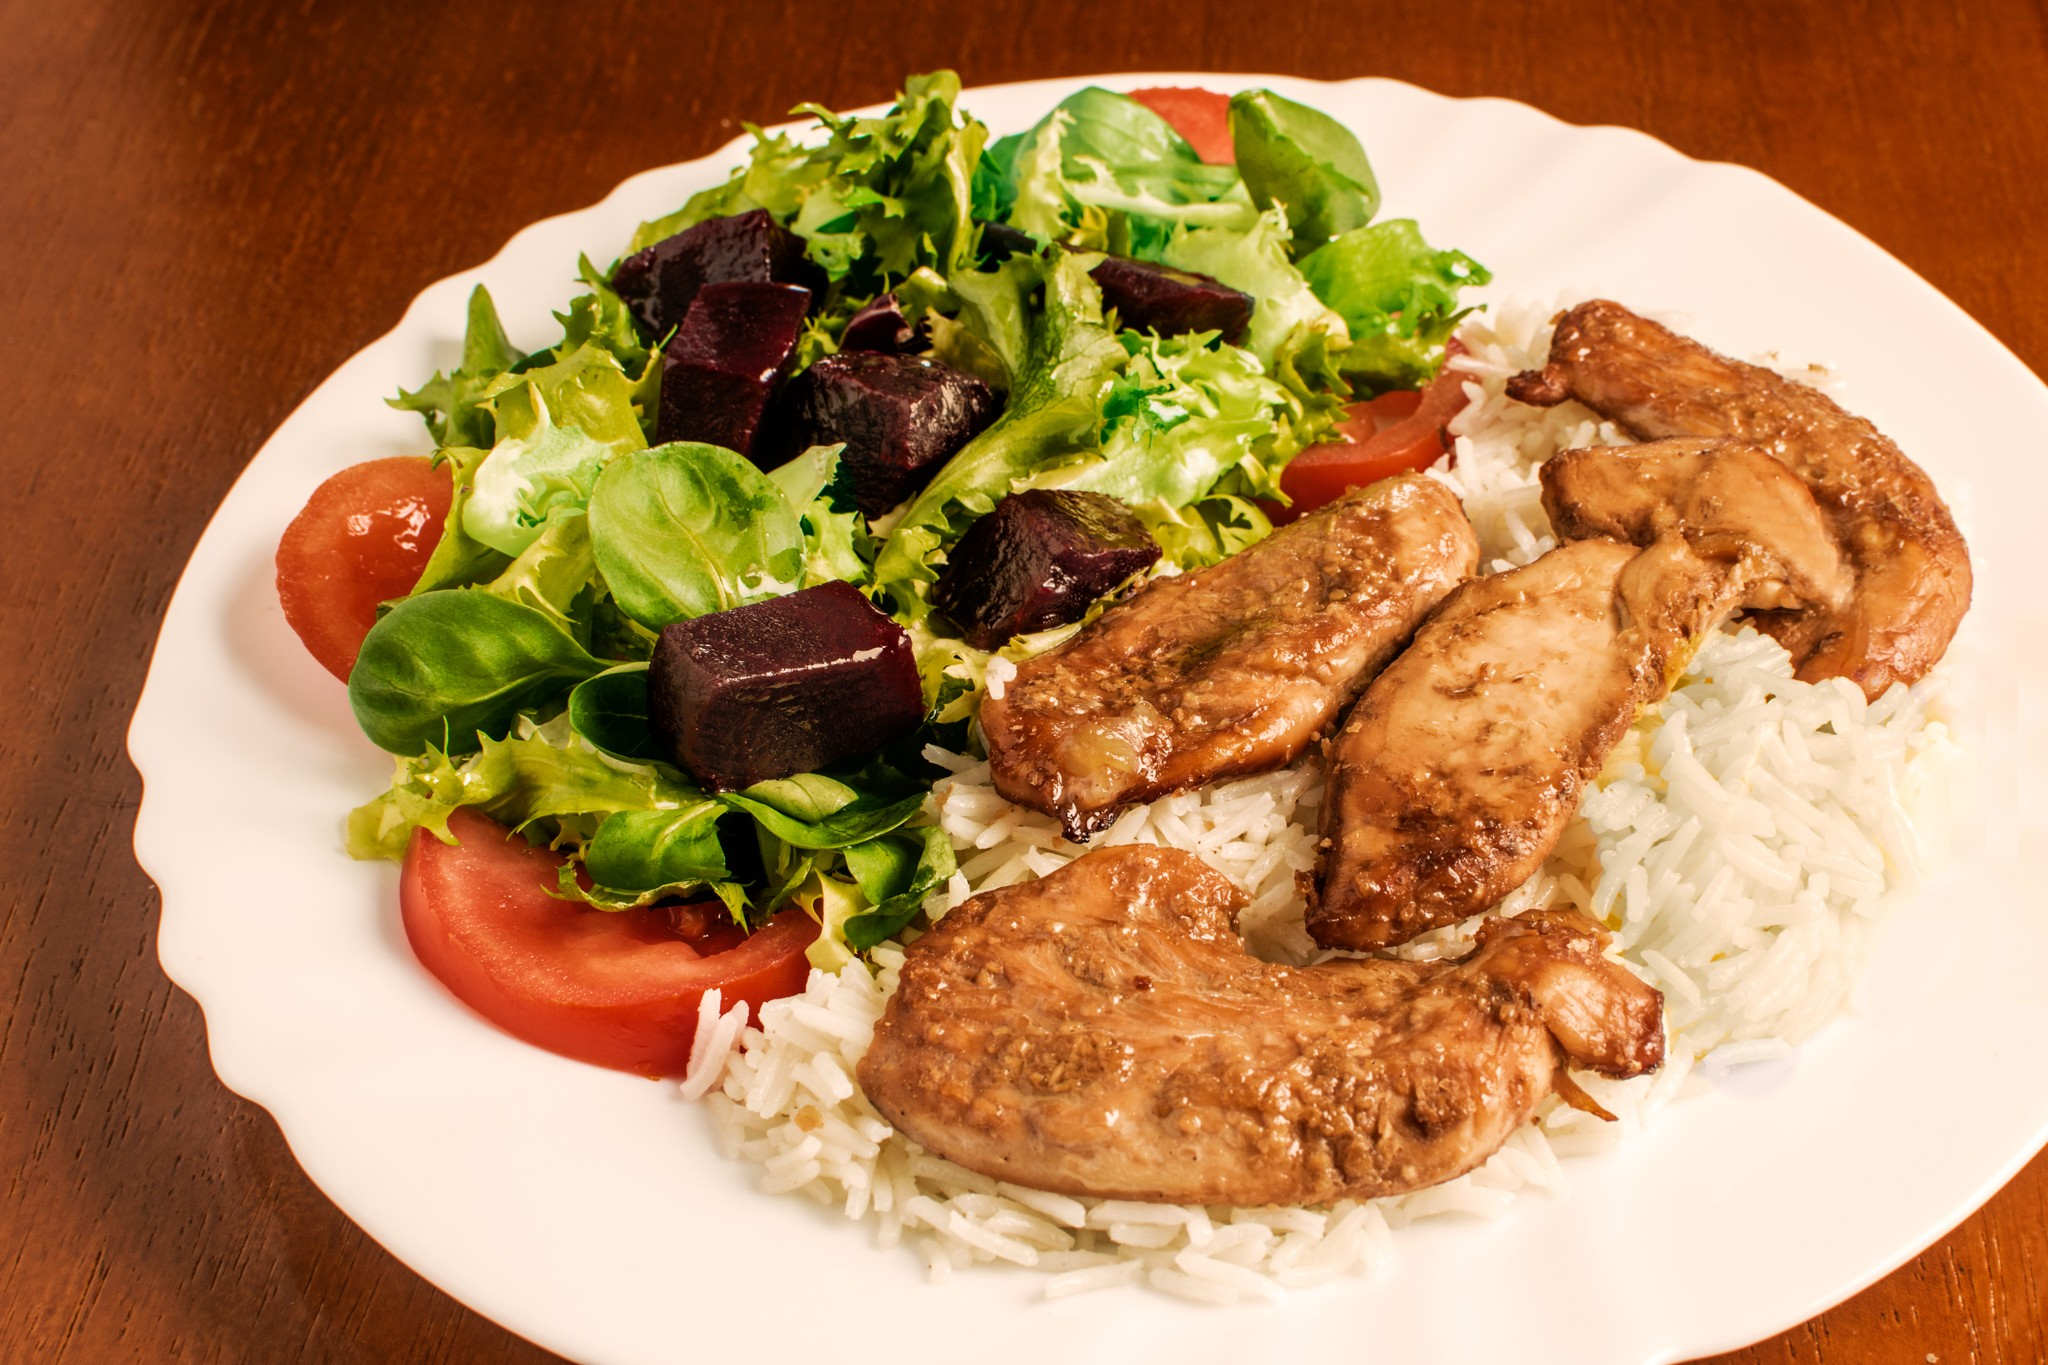 honey chicken and rice - greener veg-3.jpg